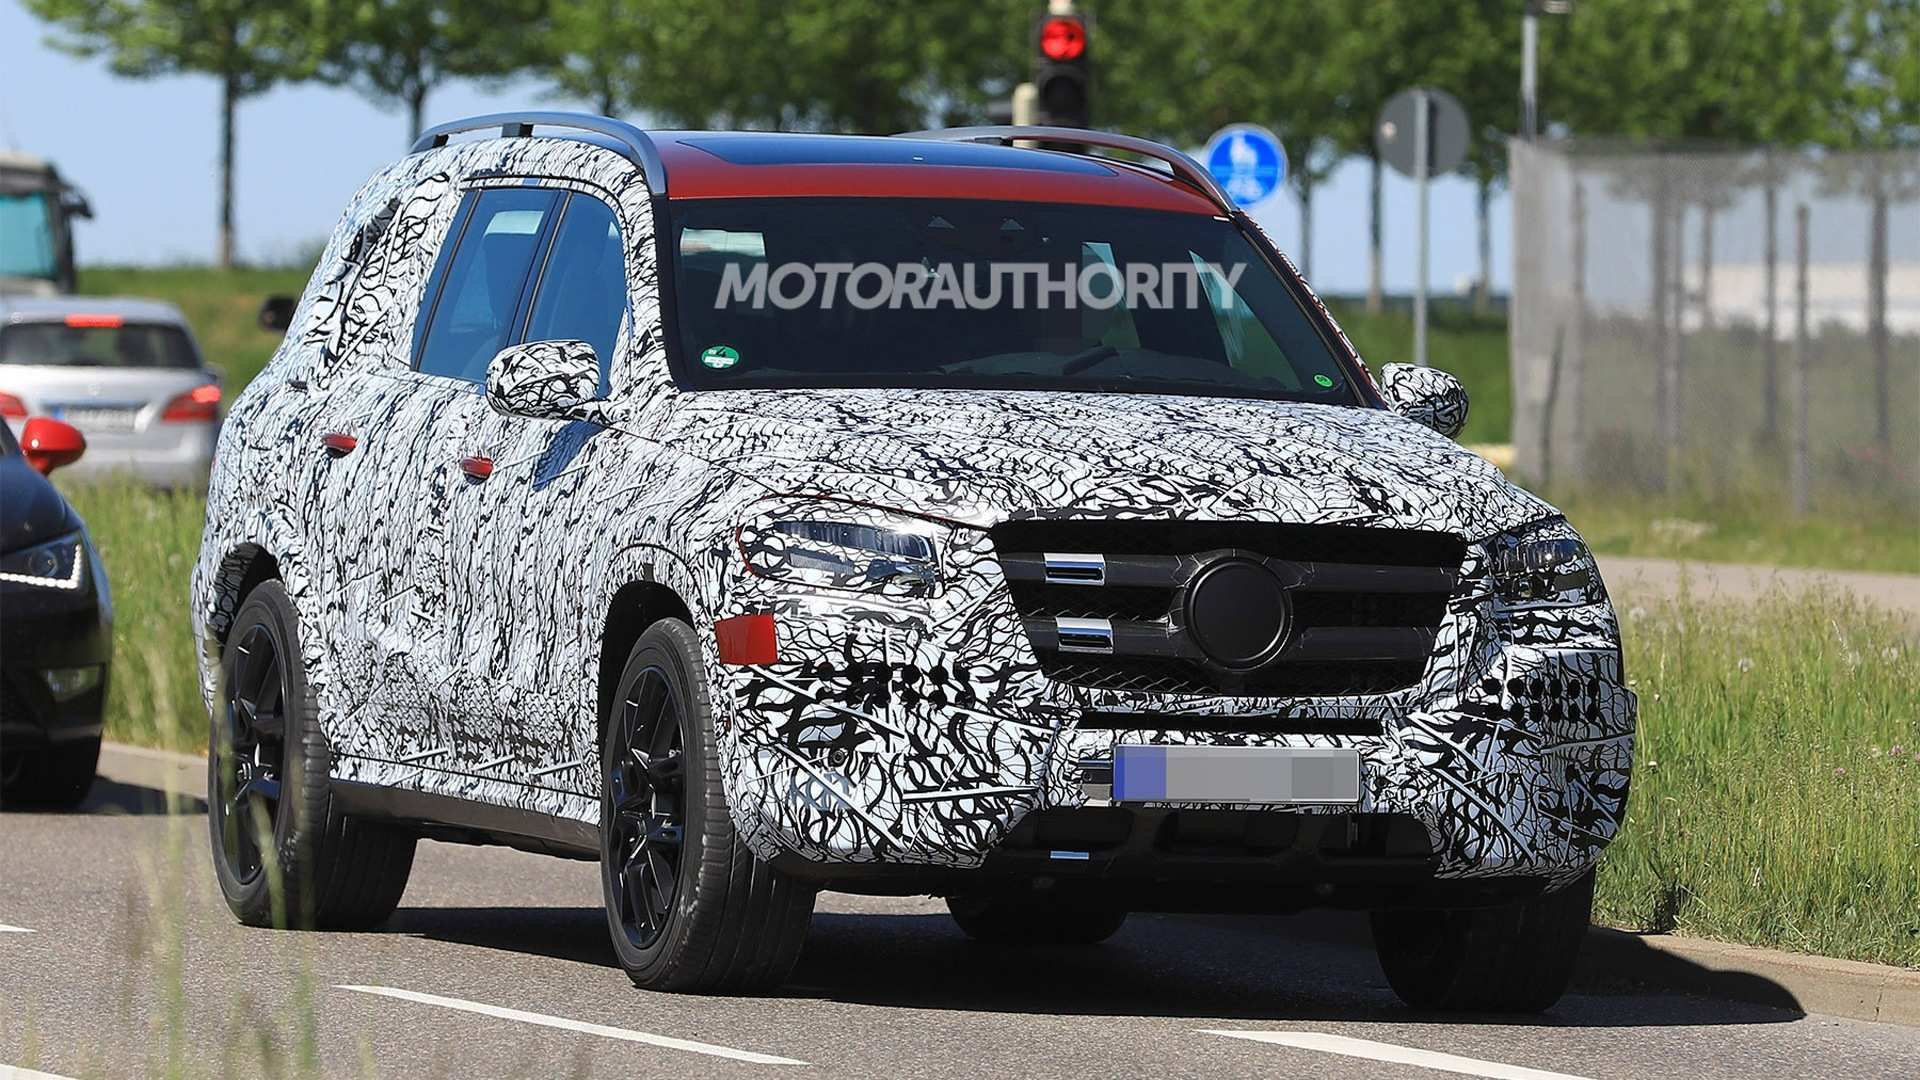 74 Concept of Mercedes Maybach Gls 2020 Photos for Mercedes Maybach Gls 2020